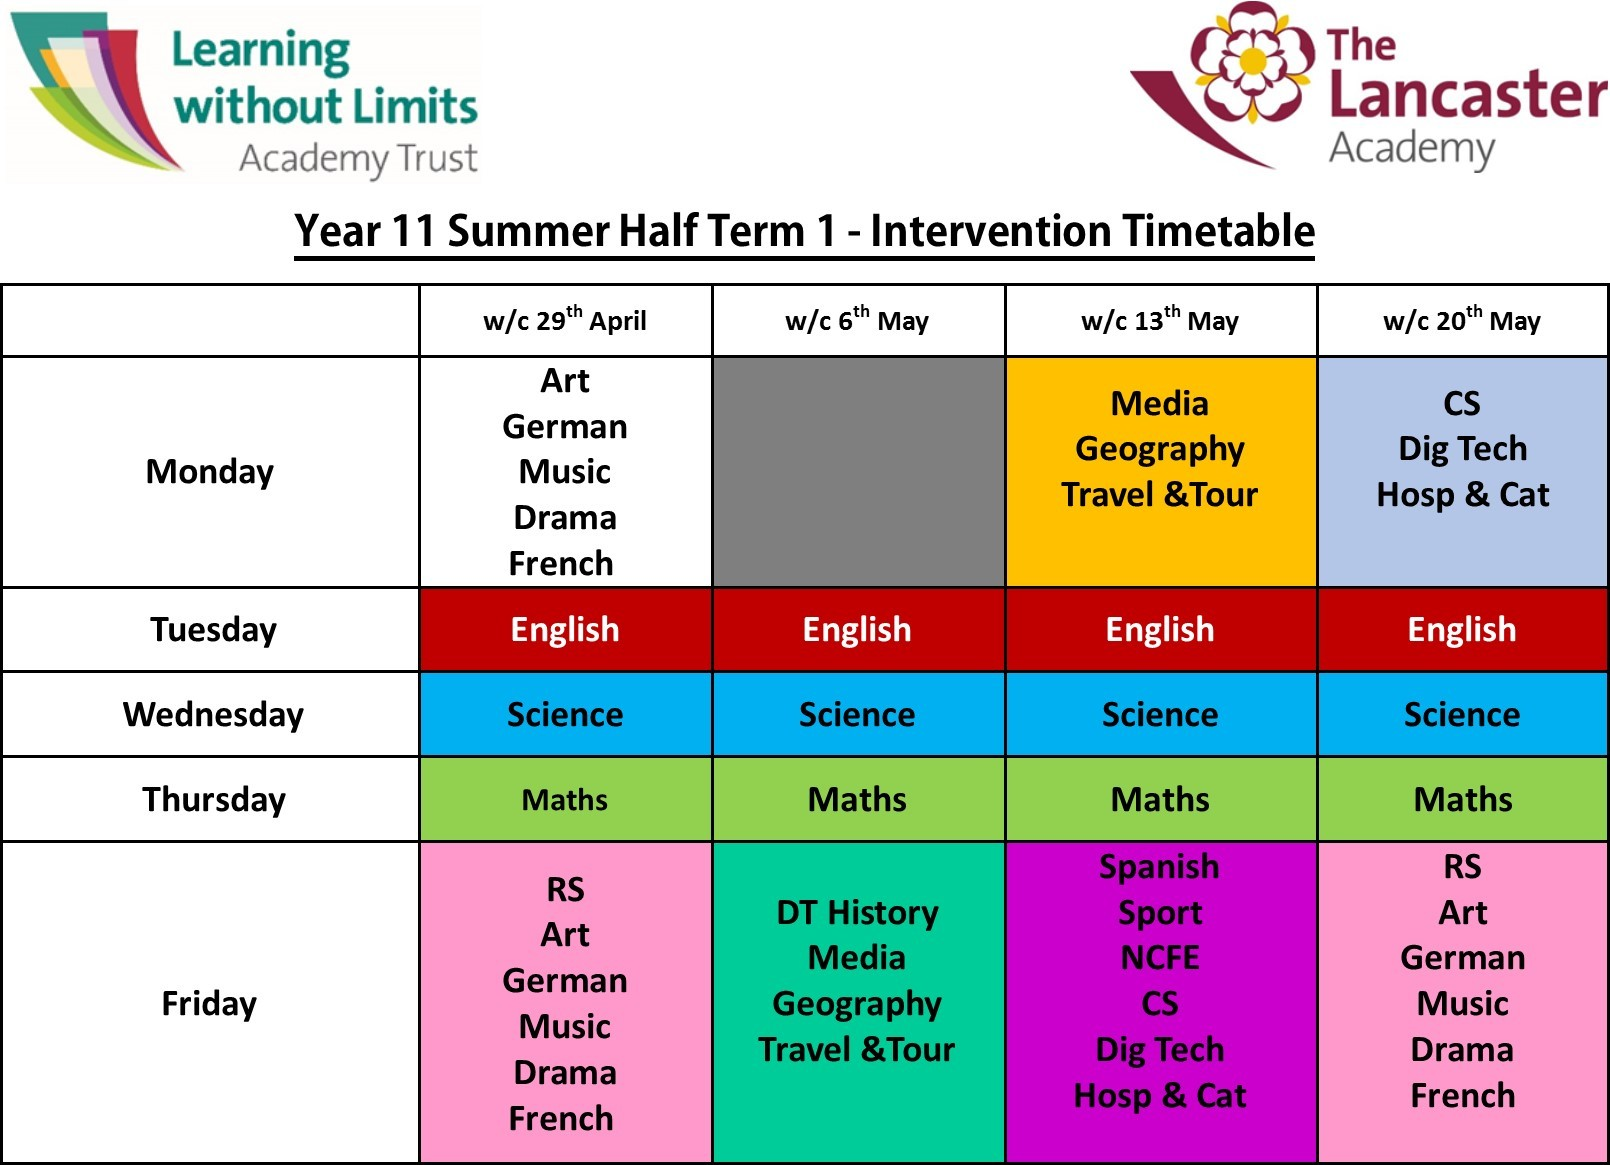 Summer Half Term 1 Intervention Timetable